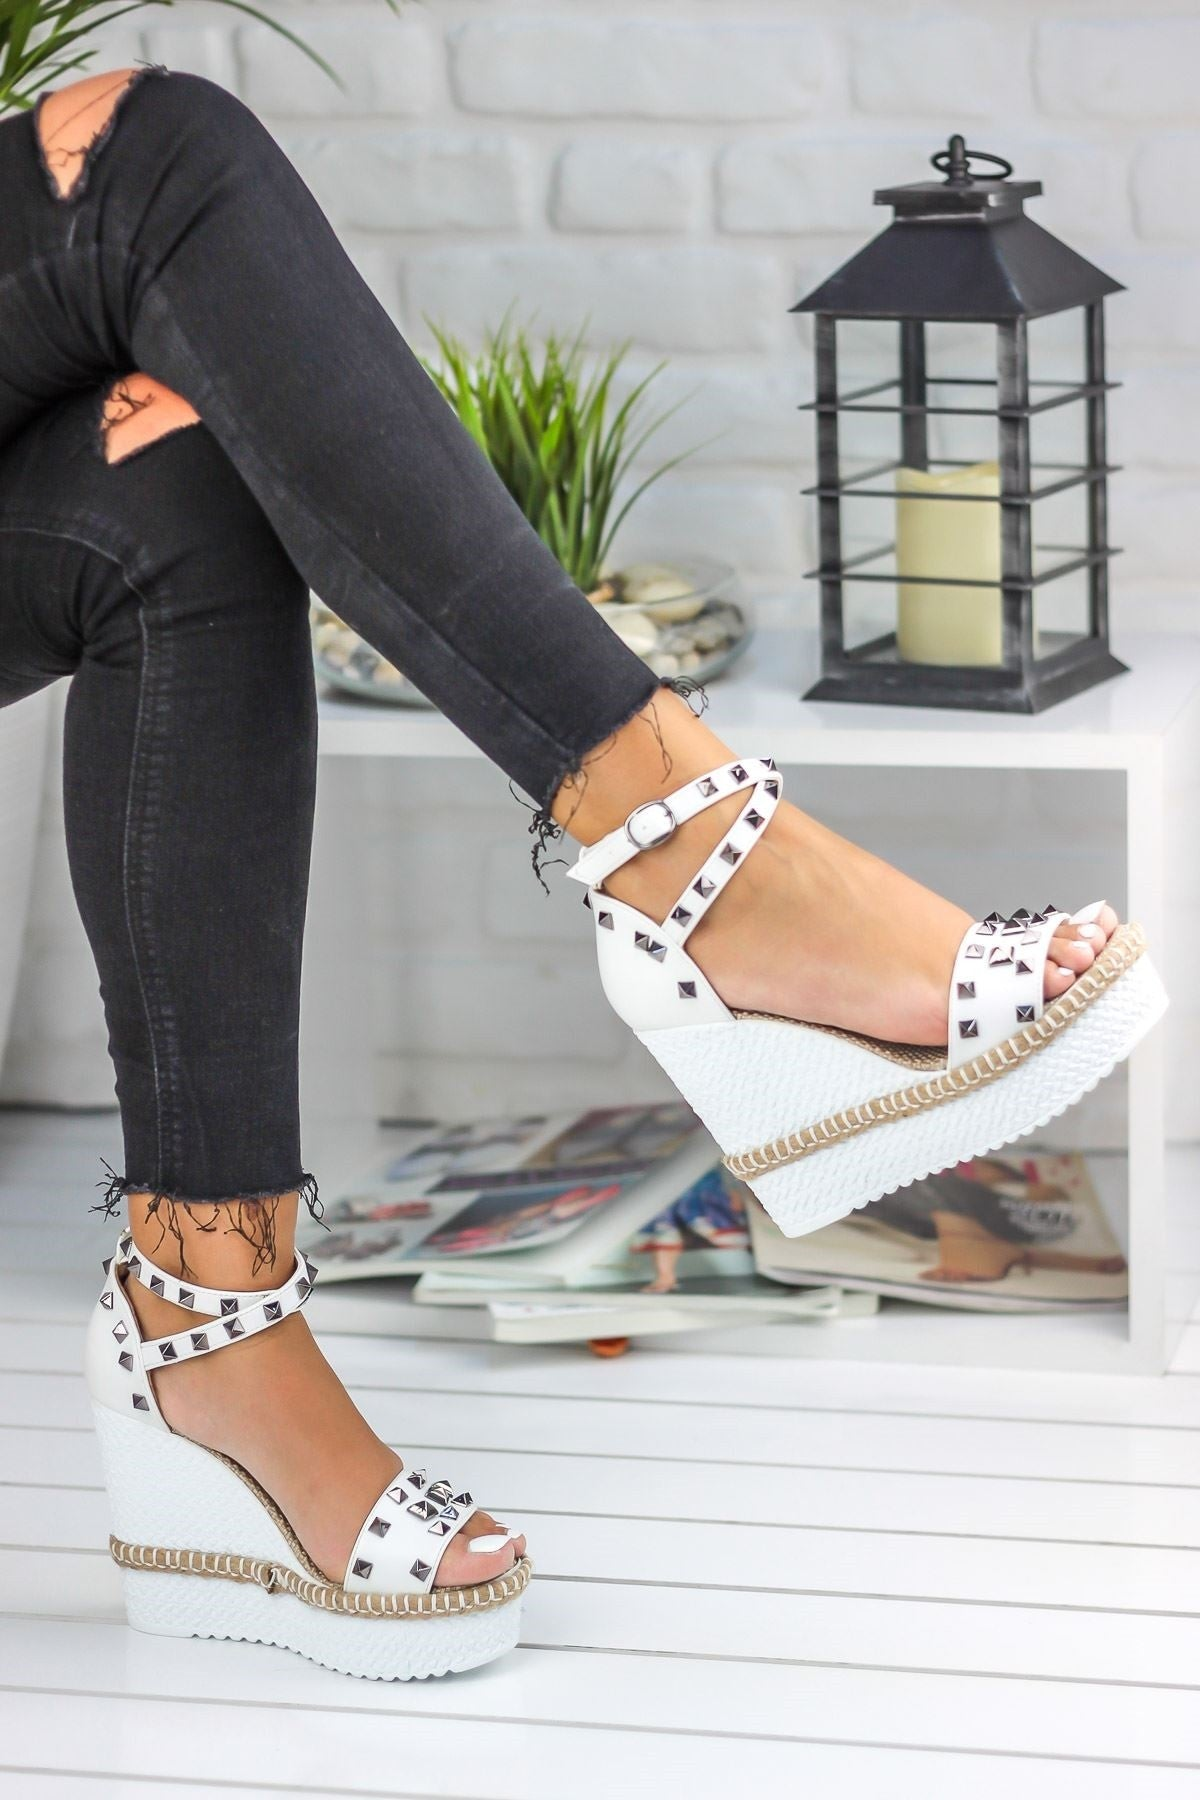 Knish's White Wedges Shoes